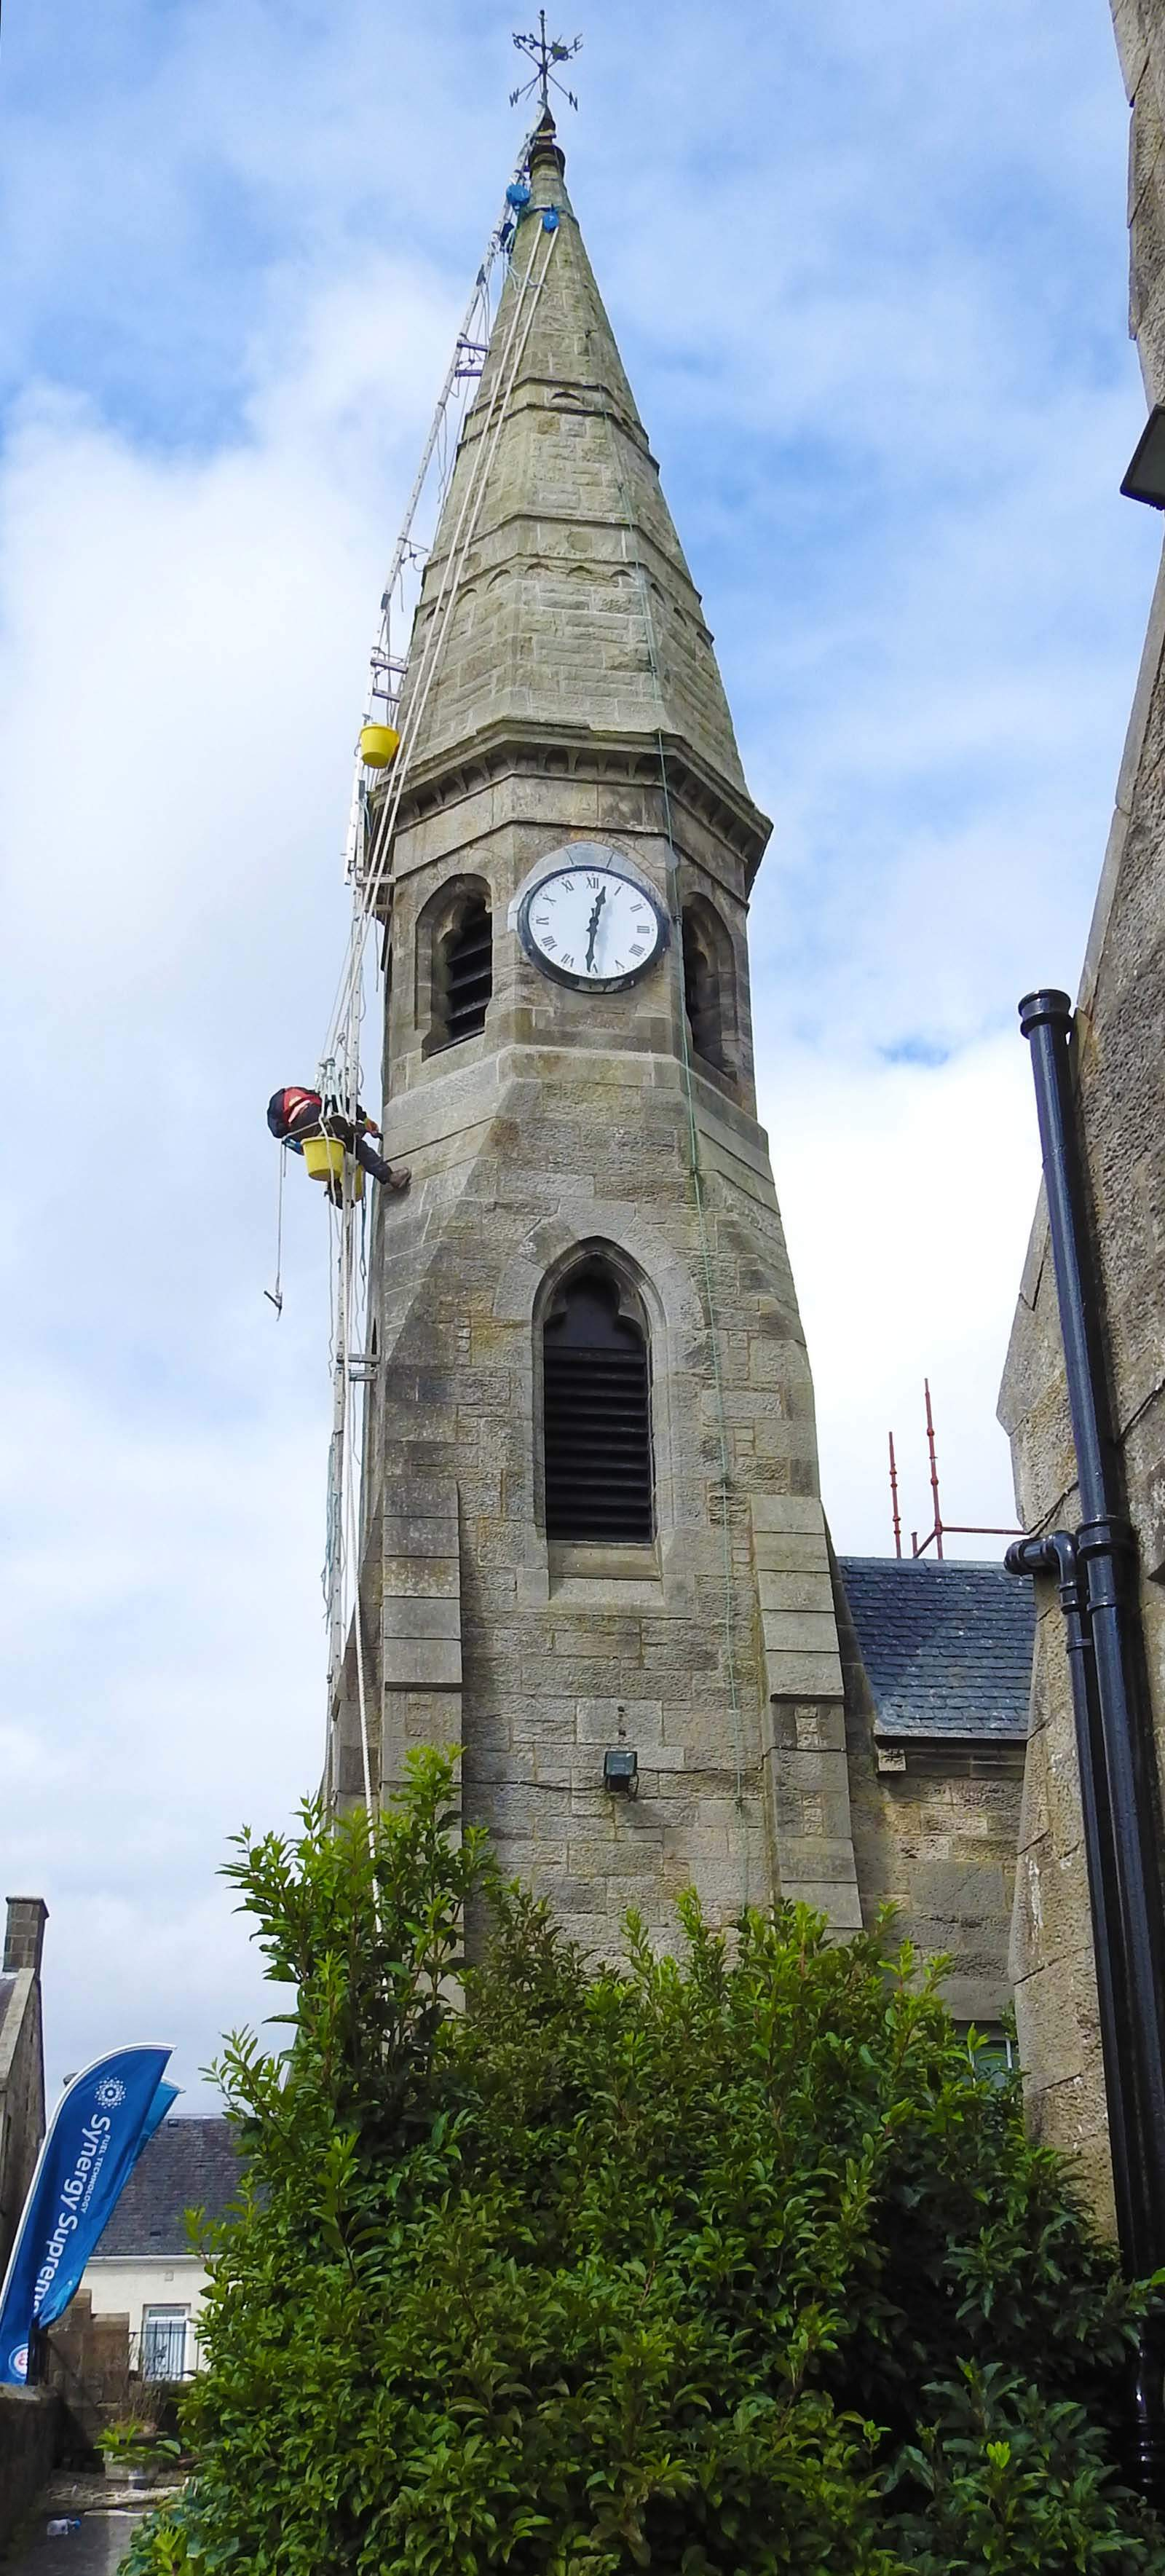 Bosuns chair access on a church spire hydraulic lime pointing contract